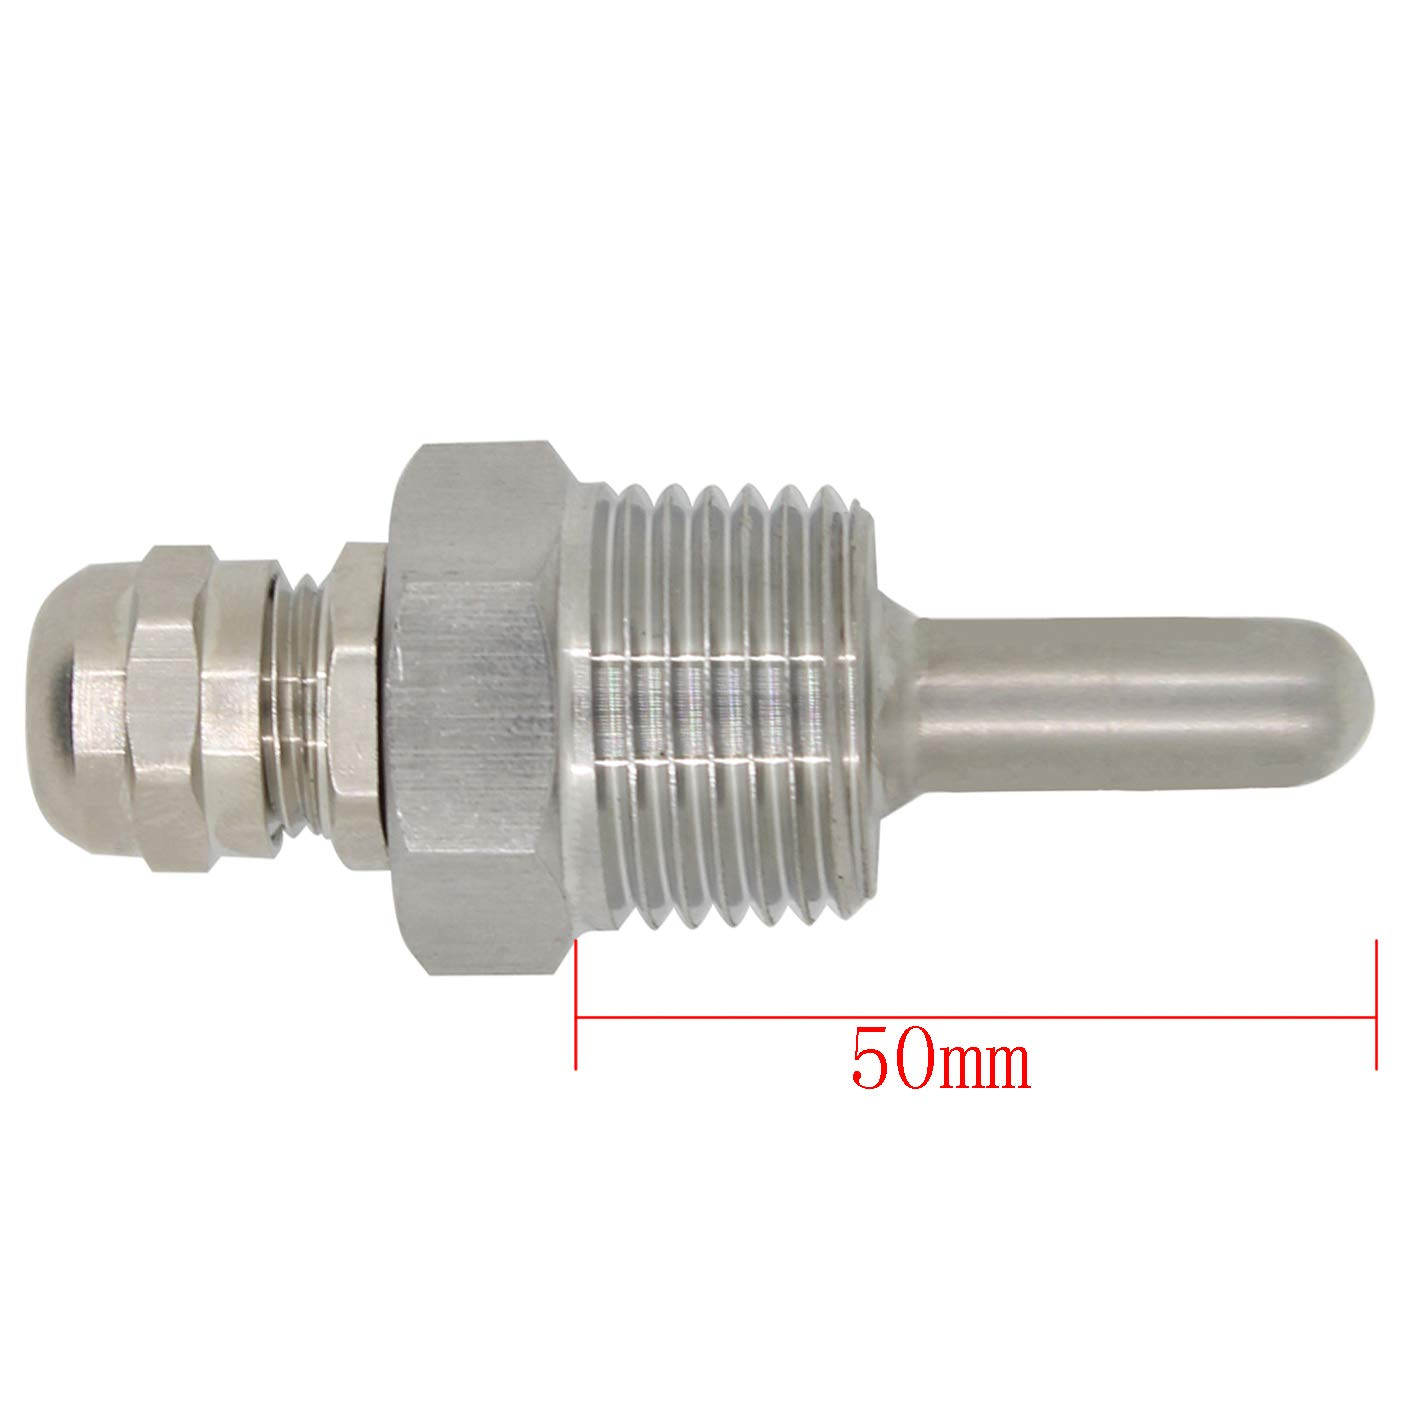 1//2 inch Brewing thermowell Stainless Steel 304 with Cap for Beer fermenter Homebrew Boiler 30mm 50mm 100mm 150mm 200mm 300mm 400mm 500mm 30mm